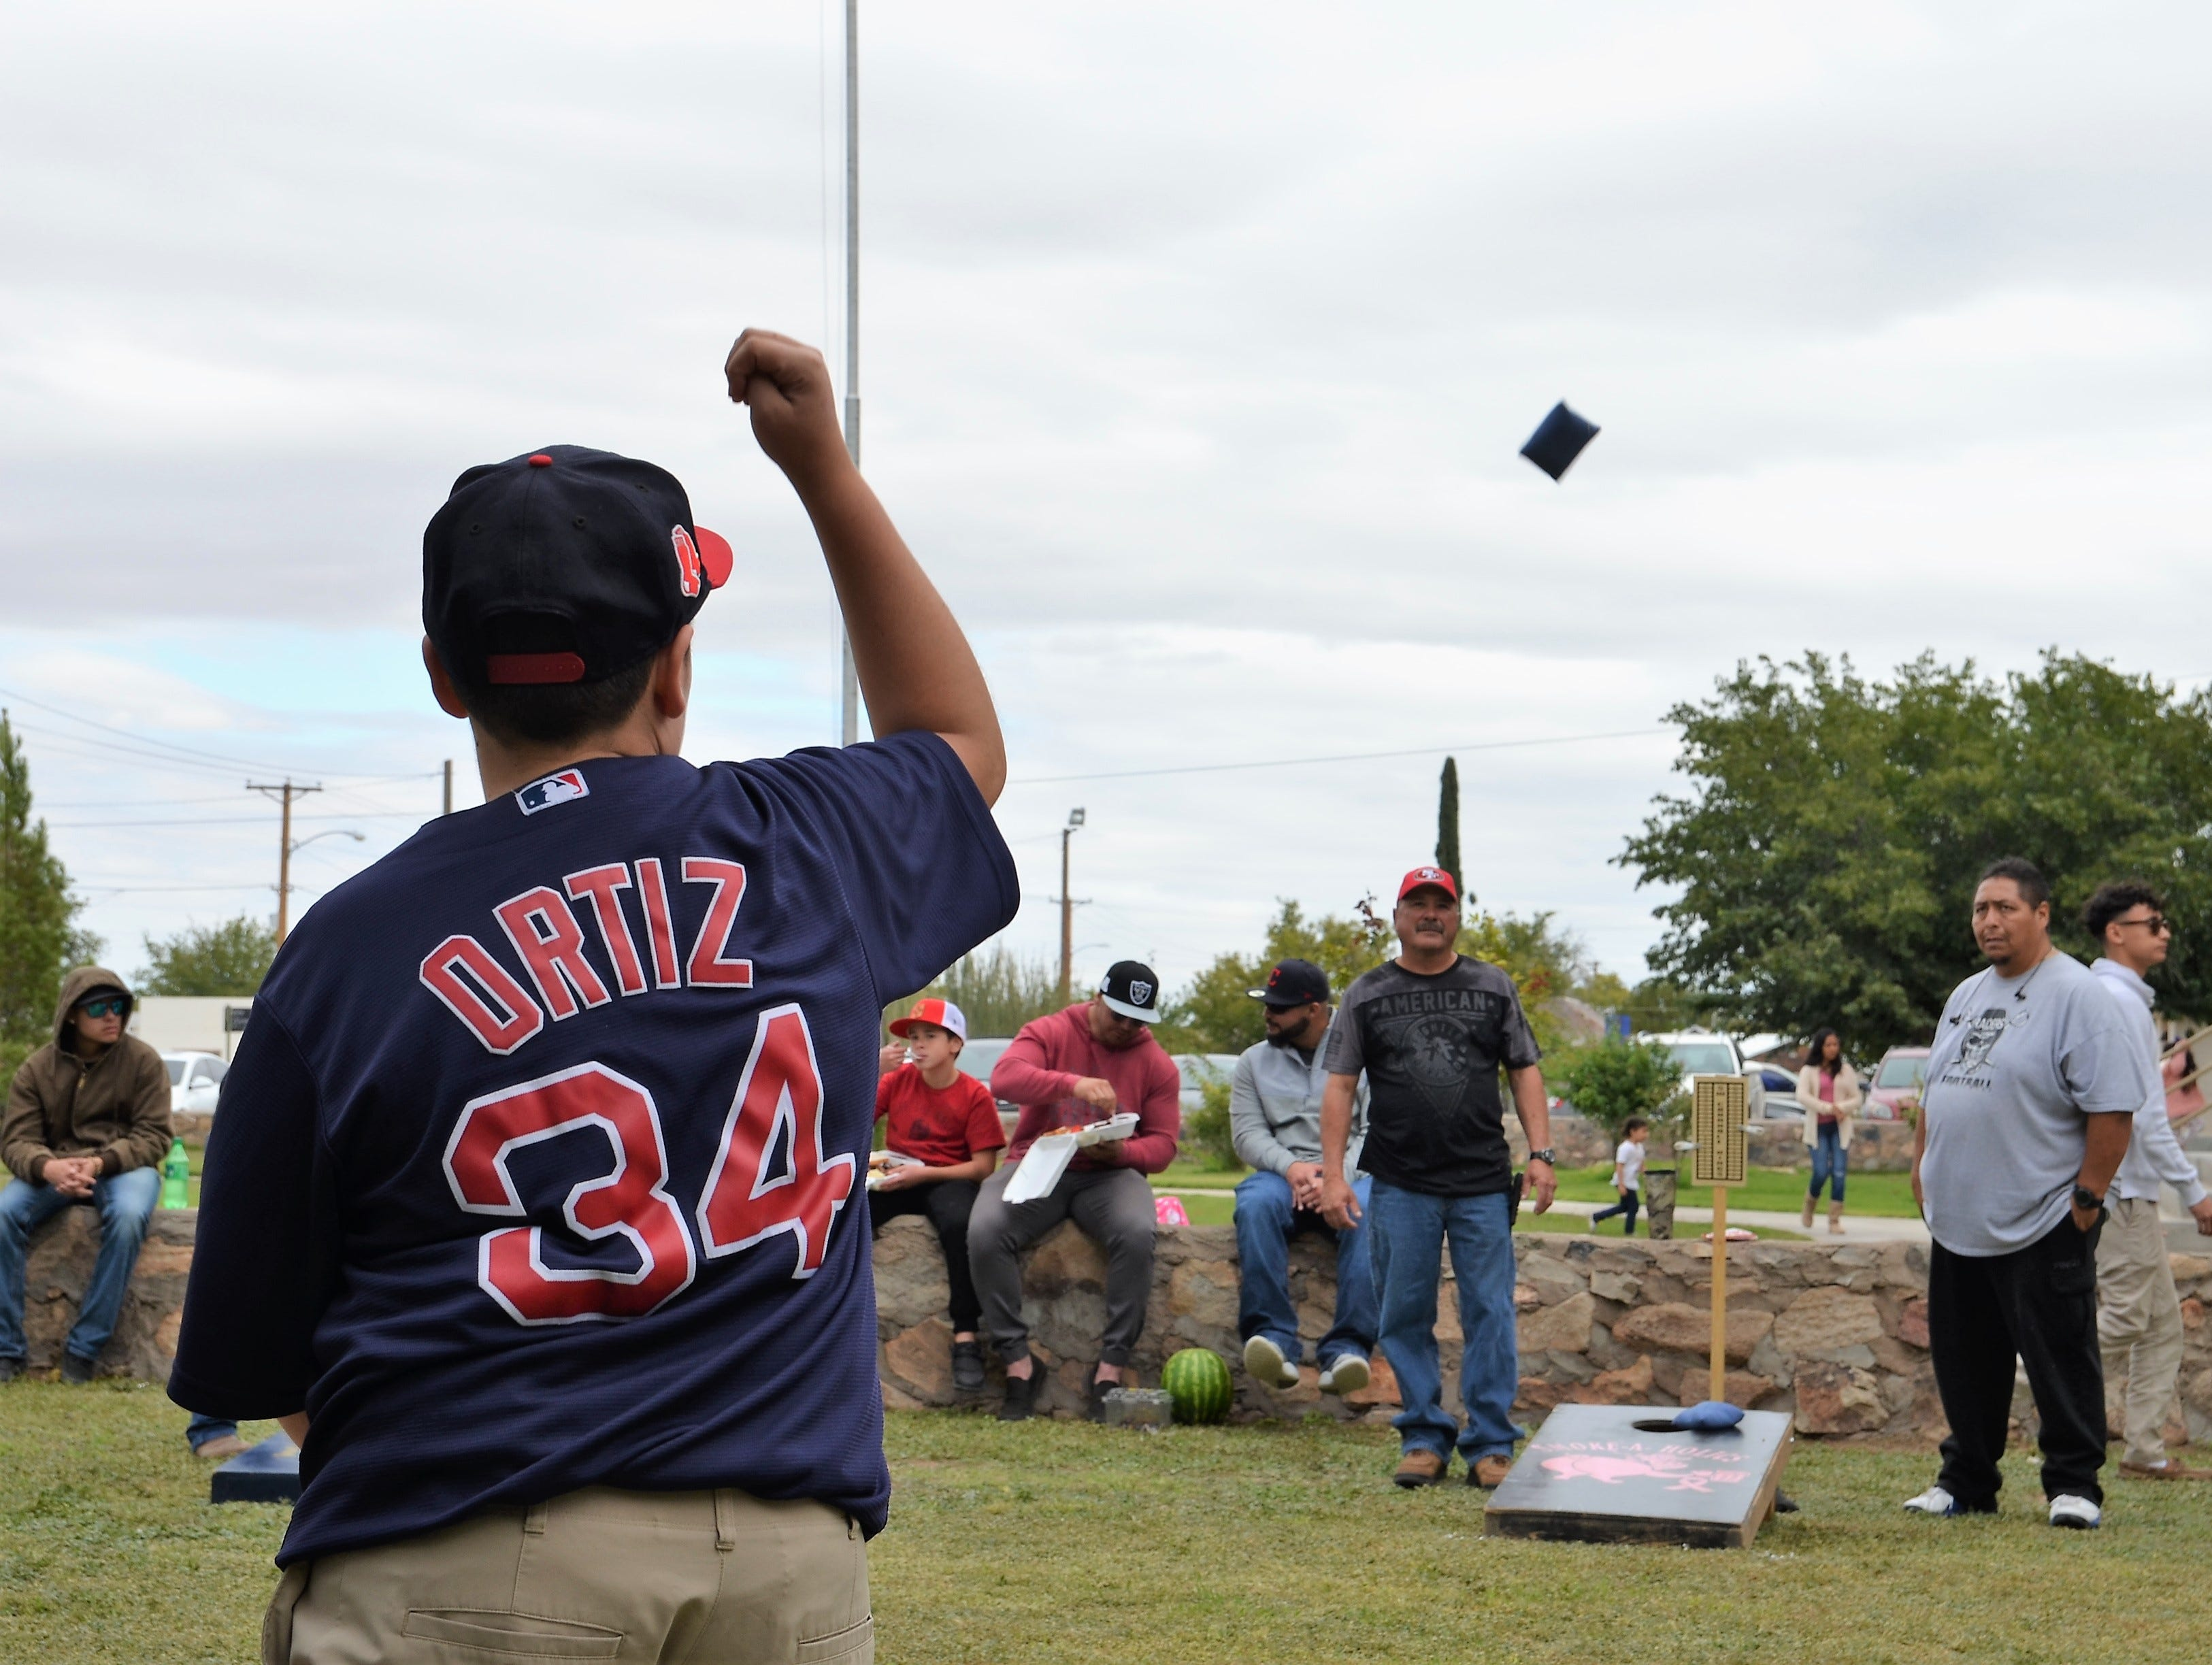 Javier Gallosa, 14, throws a bean bag while playing corn hole toss with his family members, including his dad at right: Javier Gallosa during the Klobase Festival Sunday.